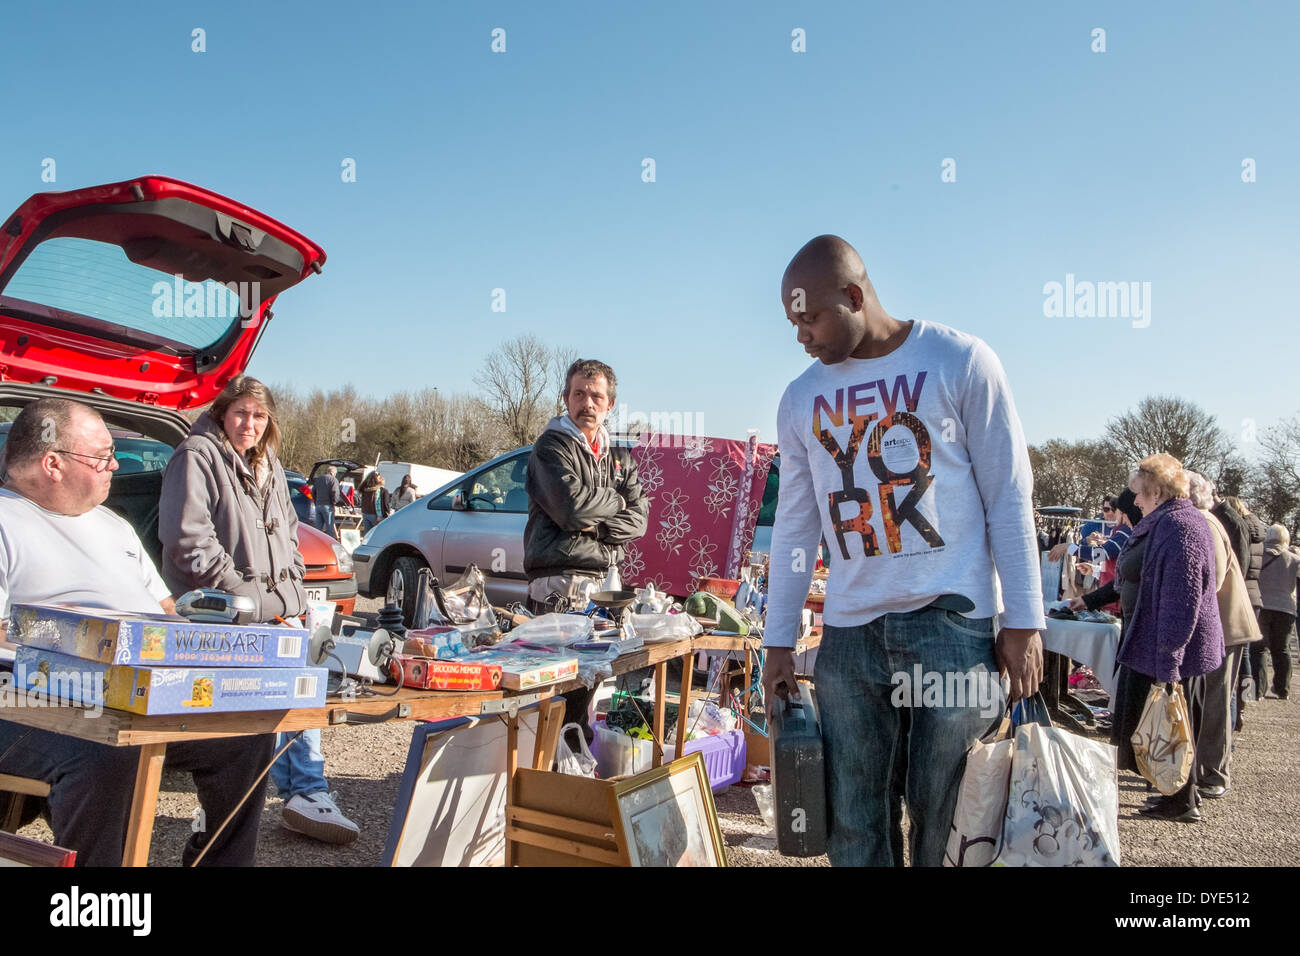 A man browsing a bric a brac stall at an open air car boot sale on a sunny day with vendors sitting in the boot of their car, UK - Stock Image